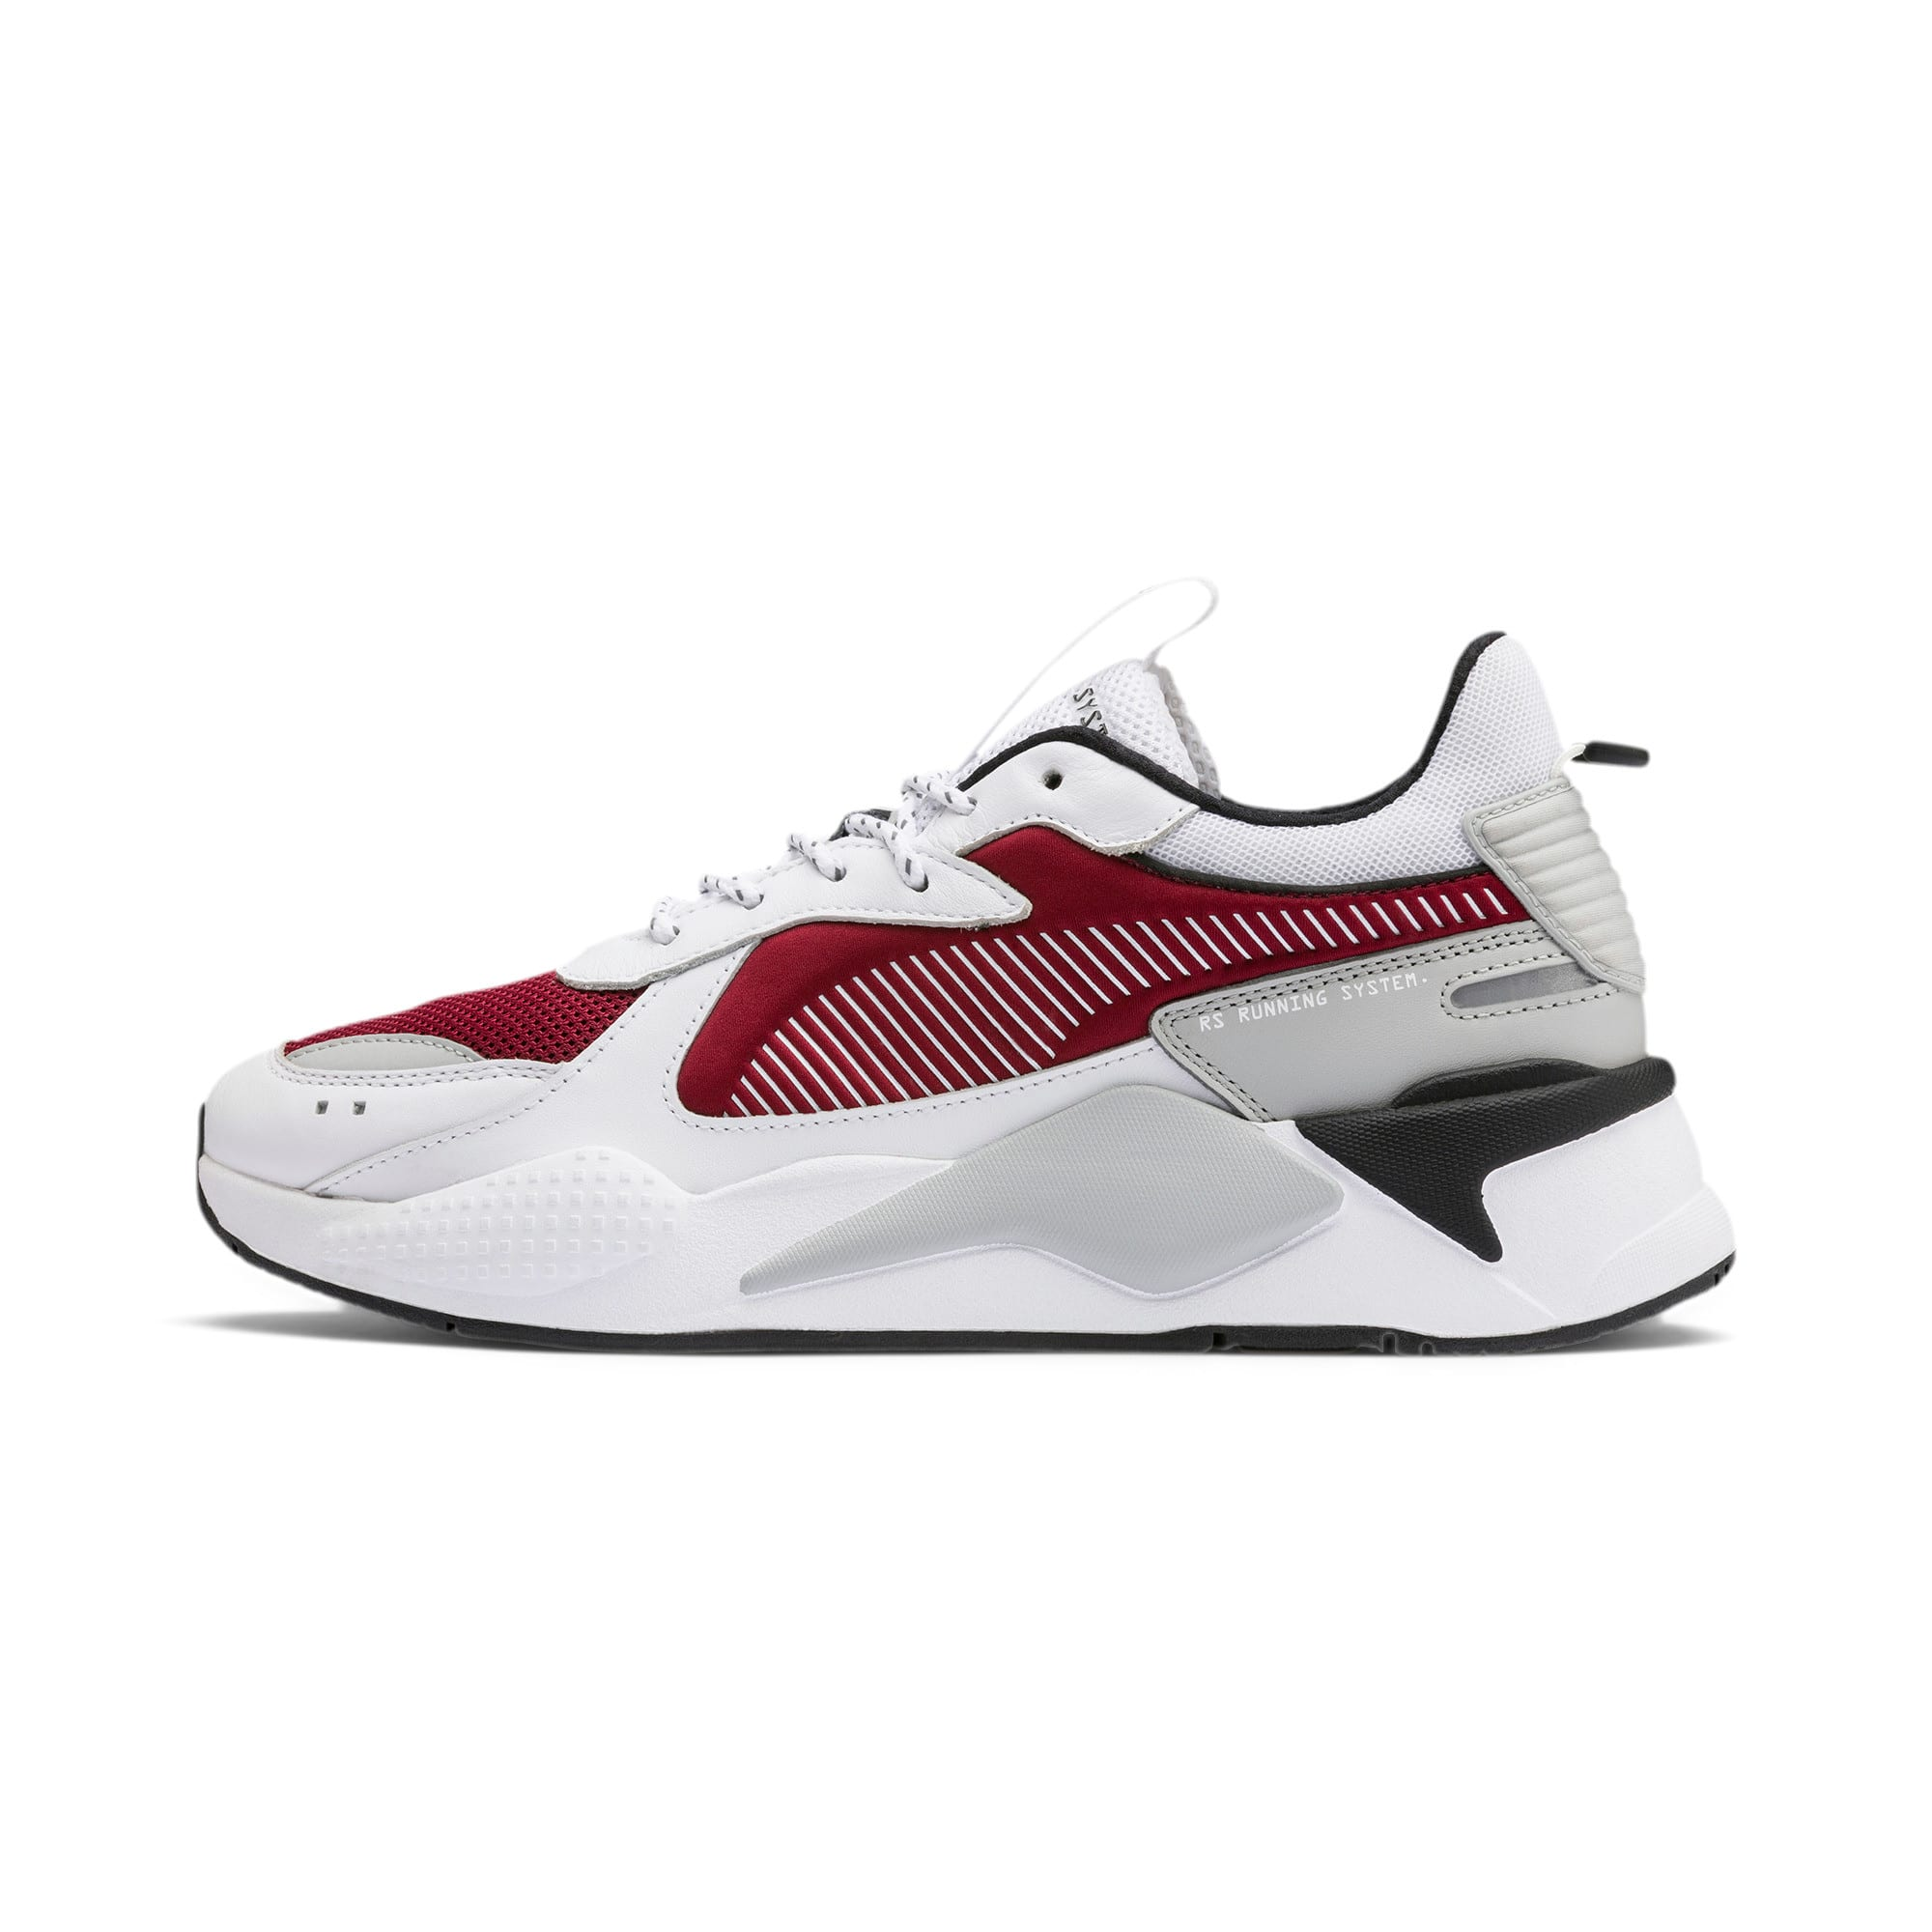 Thumbnail 1 of RS-X Trainers, Puma White-Rhubarb, medium